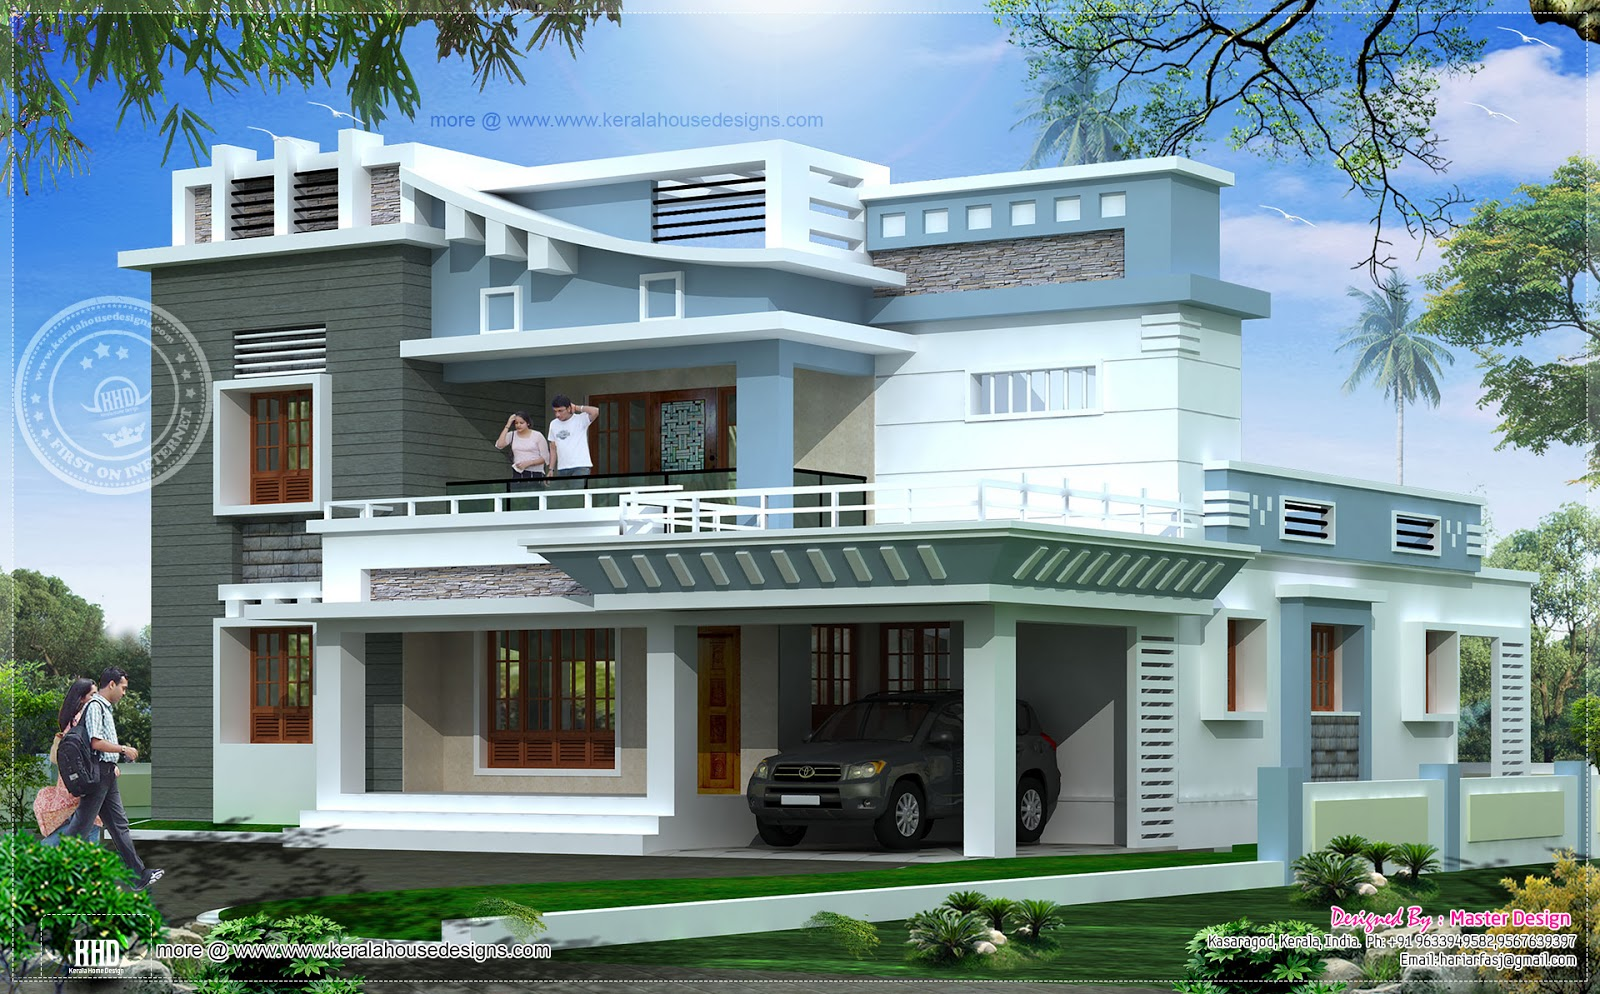 2547 square feet exterior home elevation house design plans Home outside design